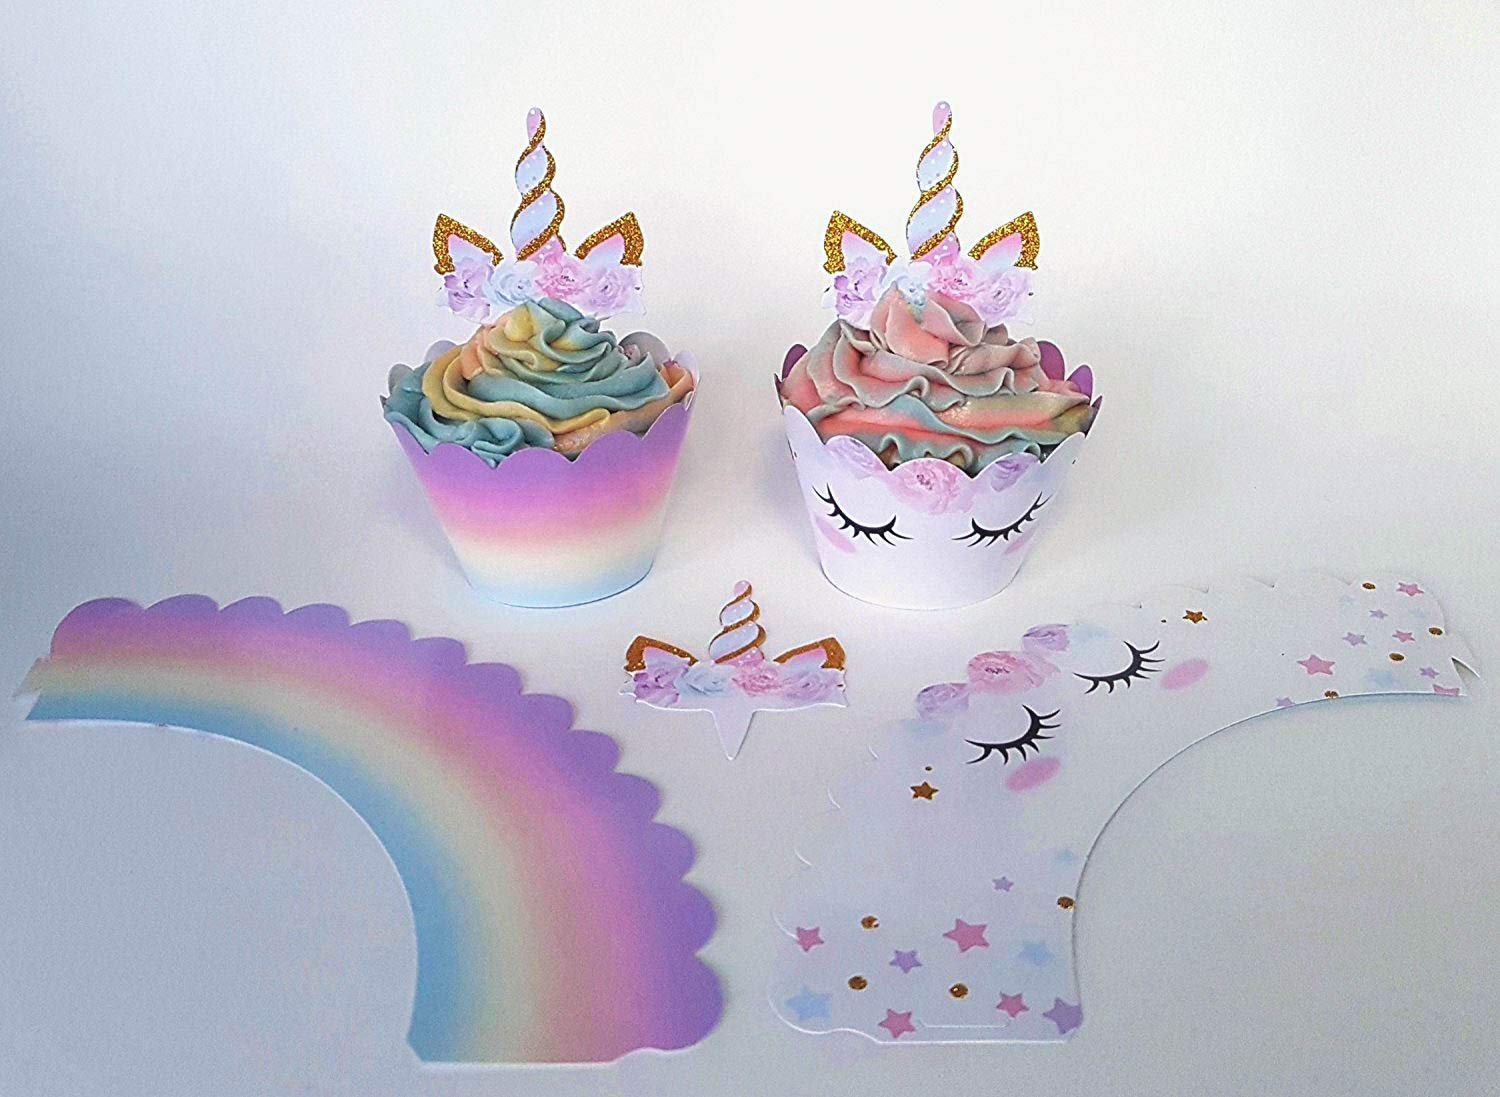 Unicorn Cupcake Decorations, Double Sided Toppers and Wrappers, Rainbow and Gold Glitter Decorations, Cute Girl's Birthday Party Supplies, 24 sets -- By Xeren Designs 4